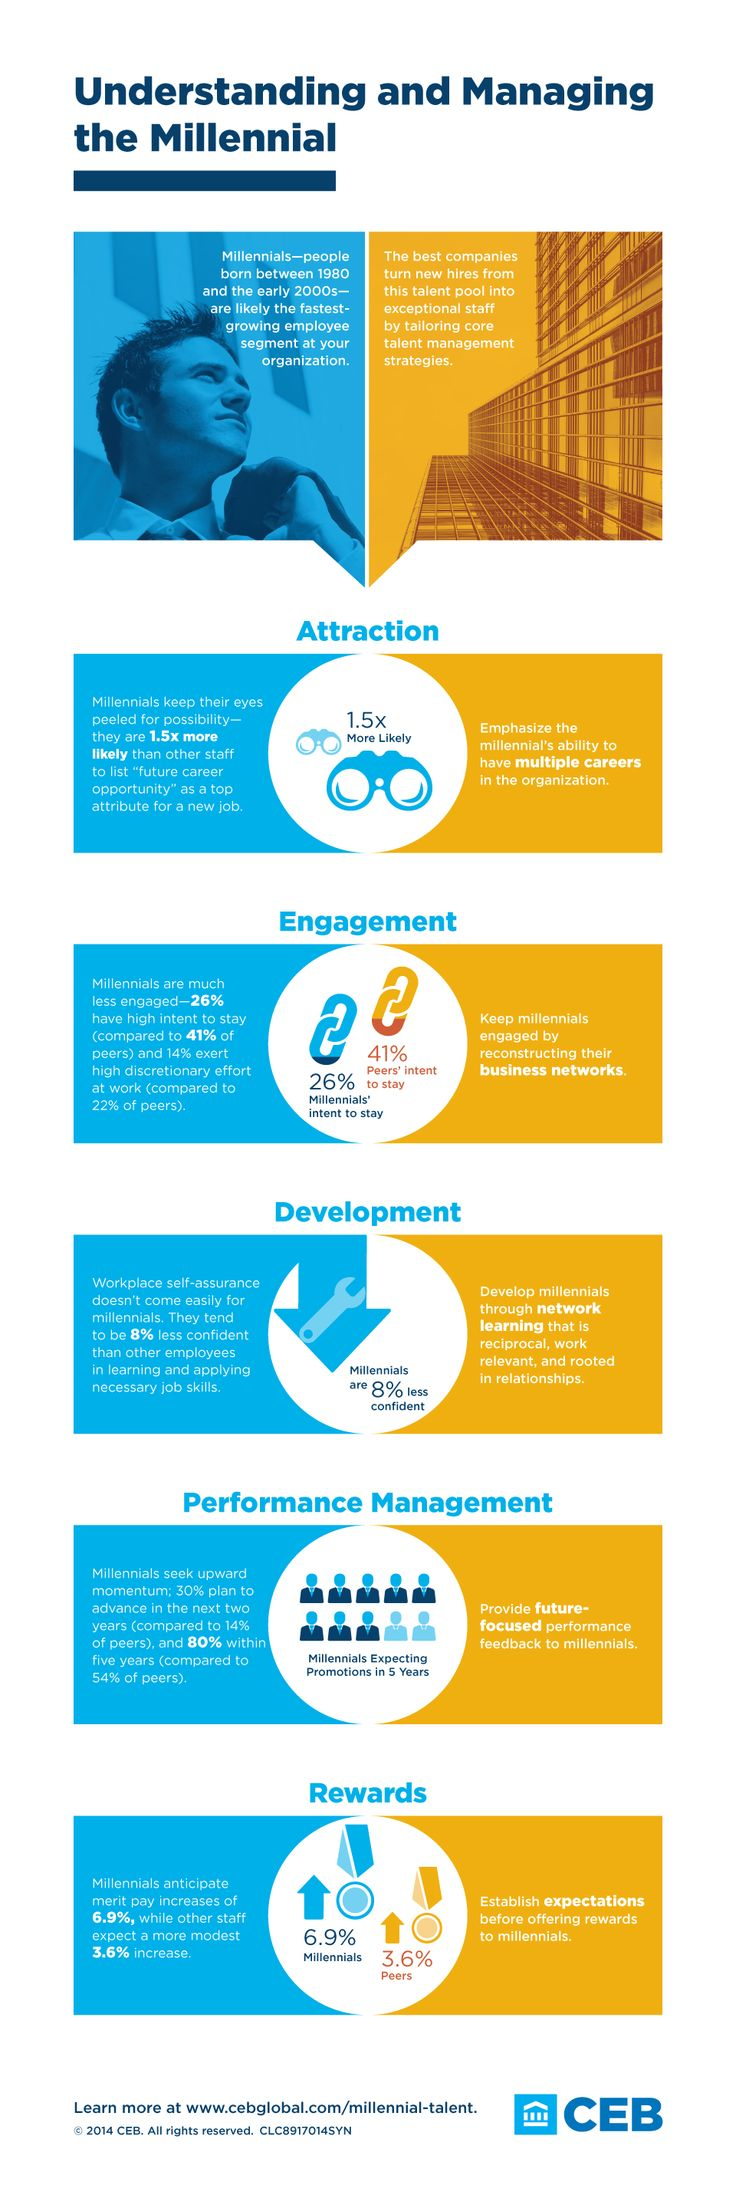 89 best managing people images on pinterest managing people understanding and managing the millenial fandeluxe Choice Image